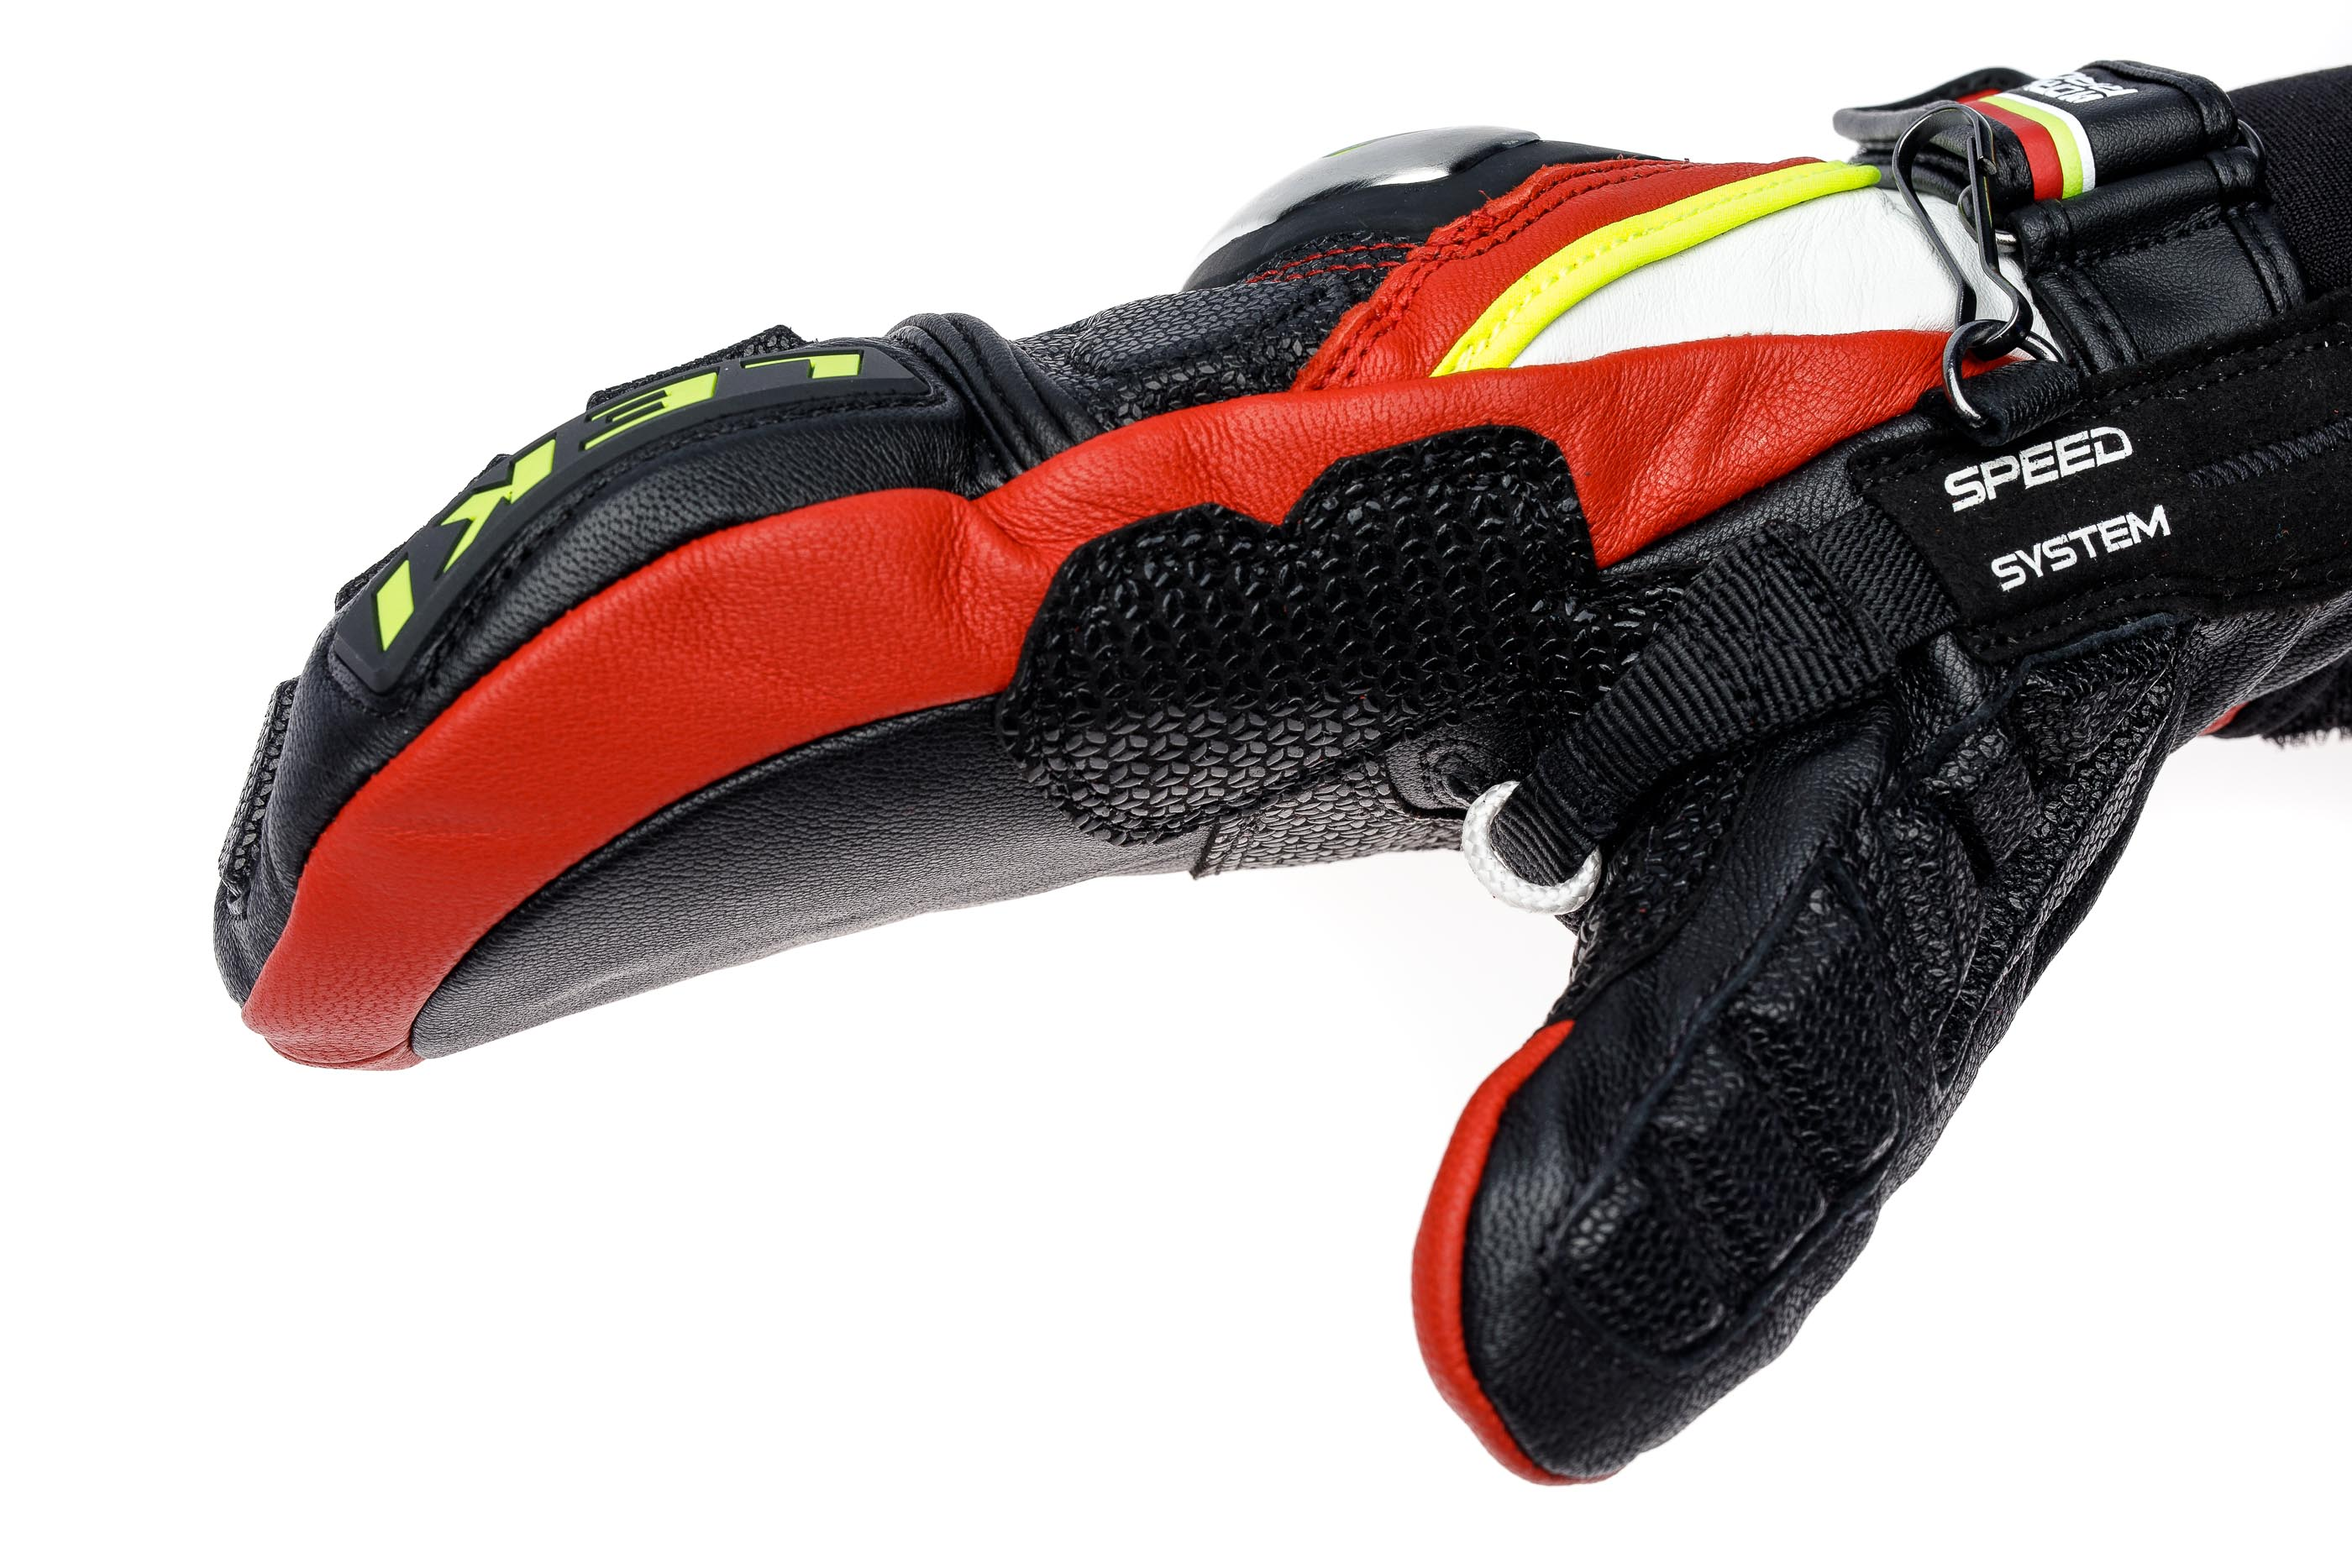 Варежки мужские Leki Worldcup Race TI S Mitten Speed System Black/Red/White/Yellow - Фото 3 большая